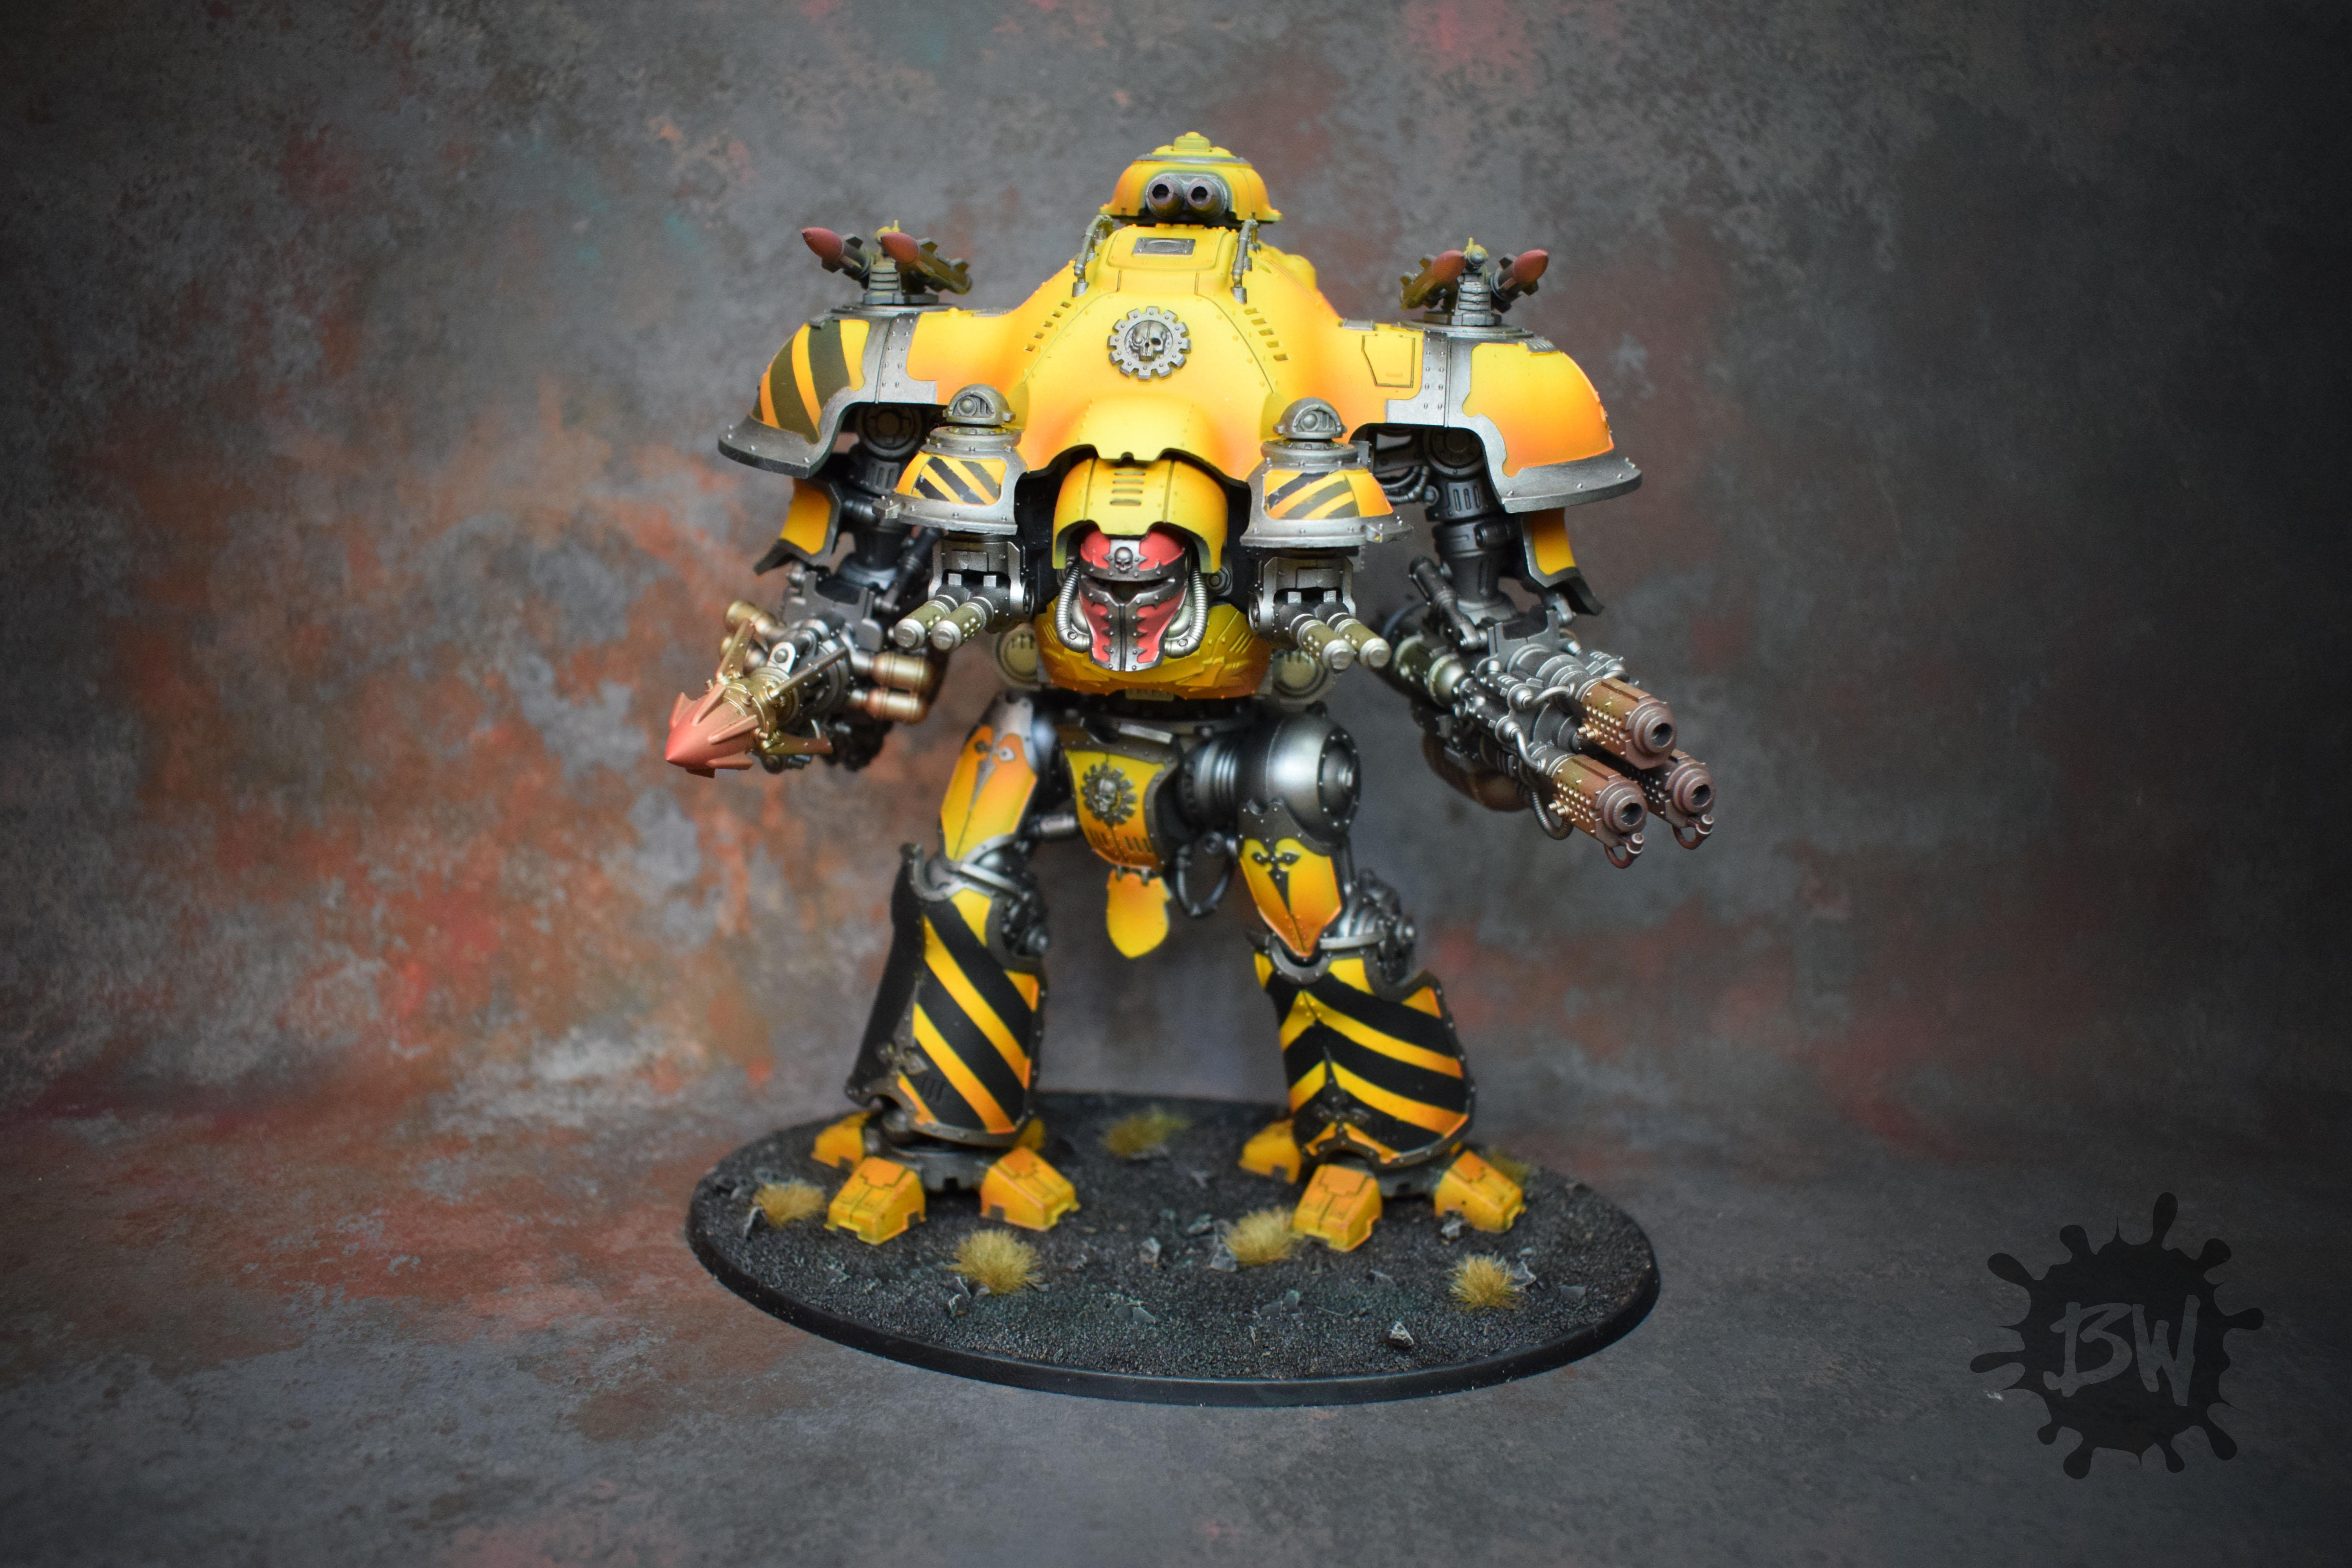 Bw, Commission, Imperial Knight, Imperium, Knight Tyrant Valiant, Painting, Warhammer 40,000, Warhammer Fantasy